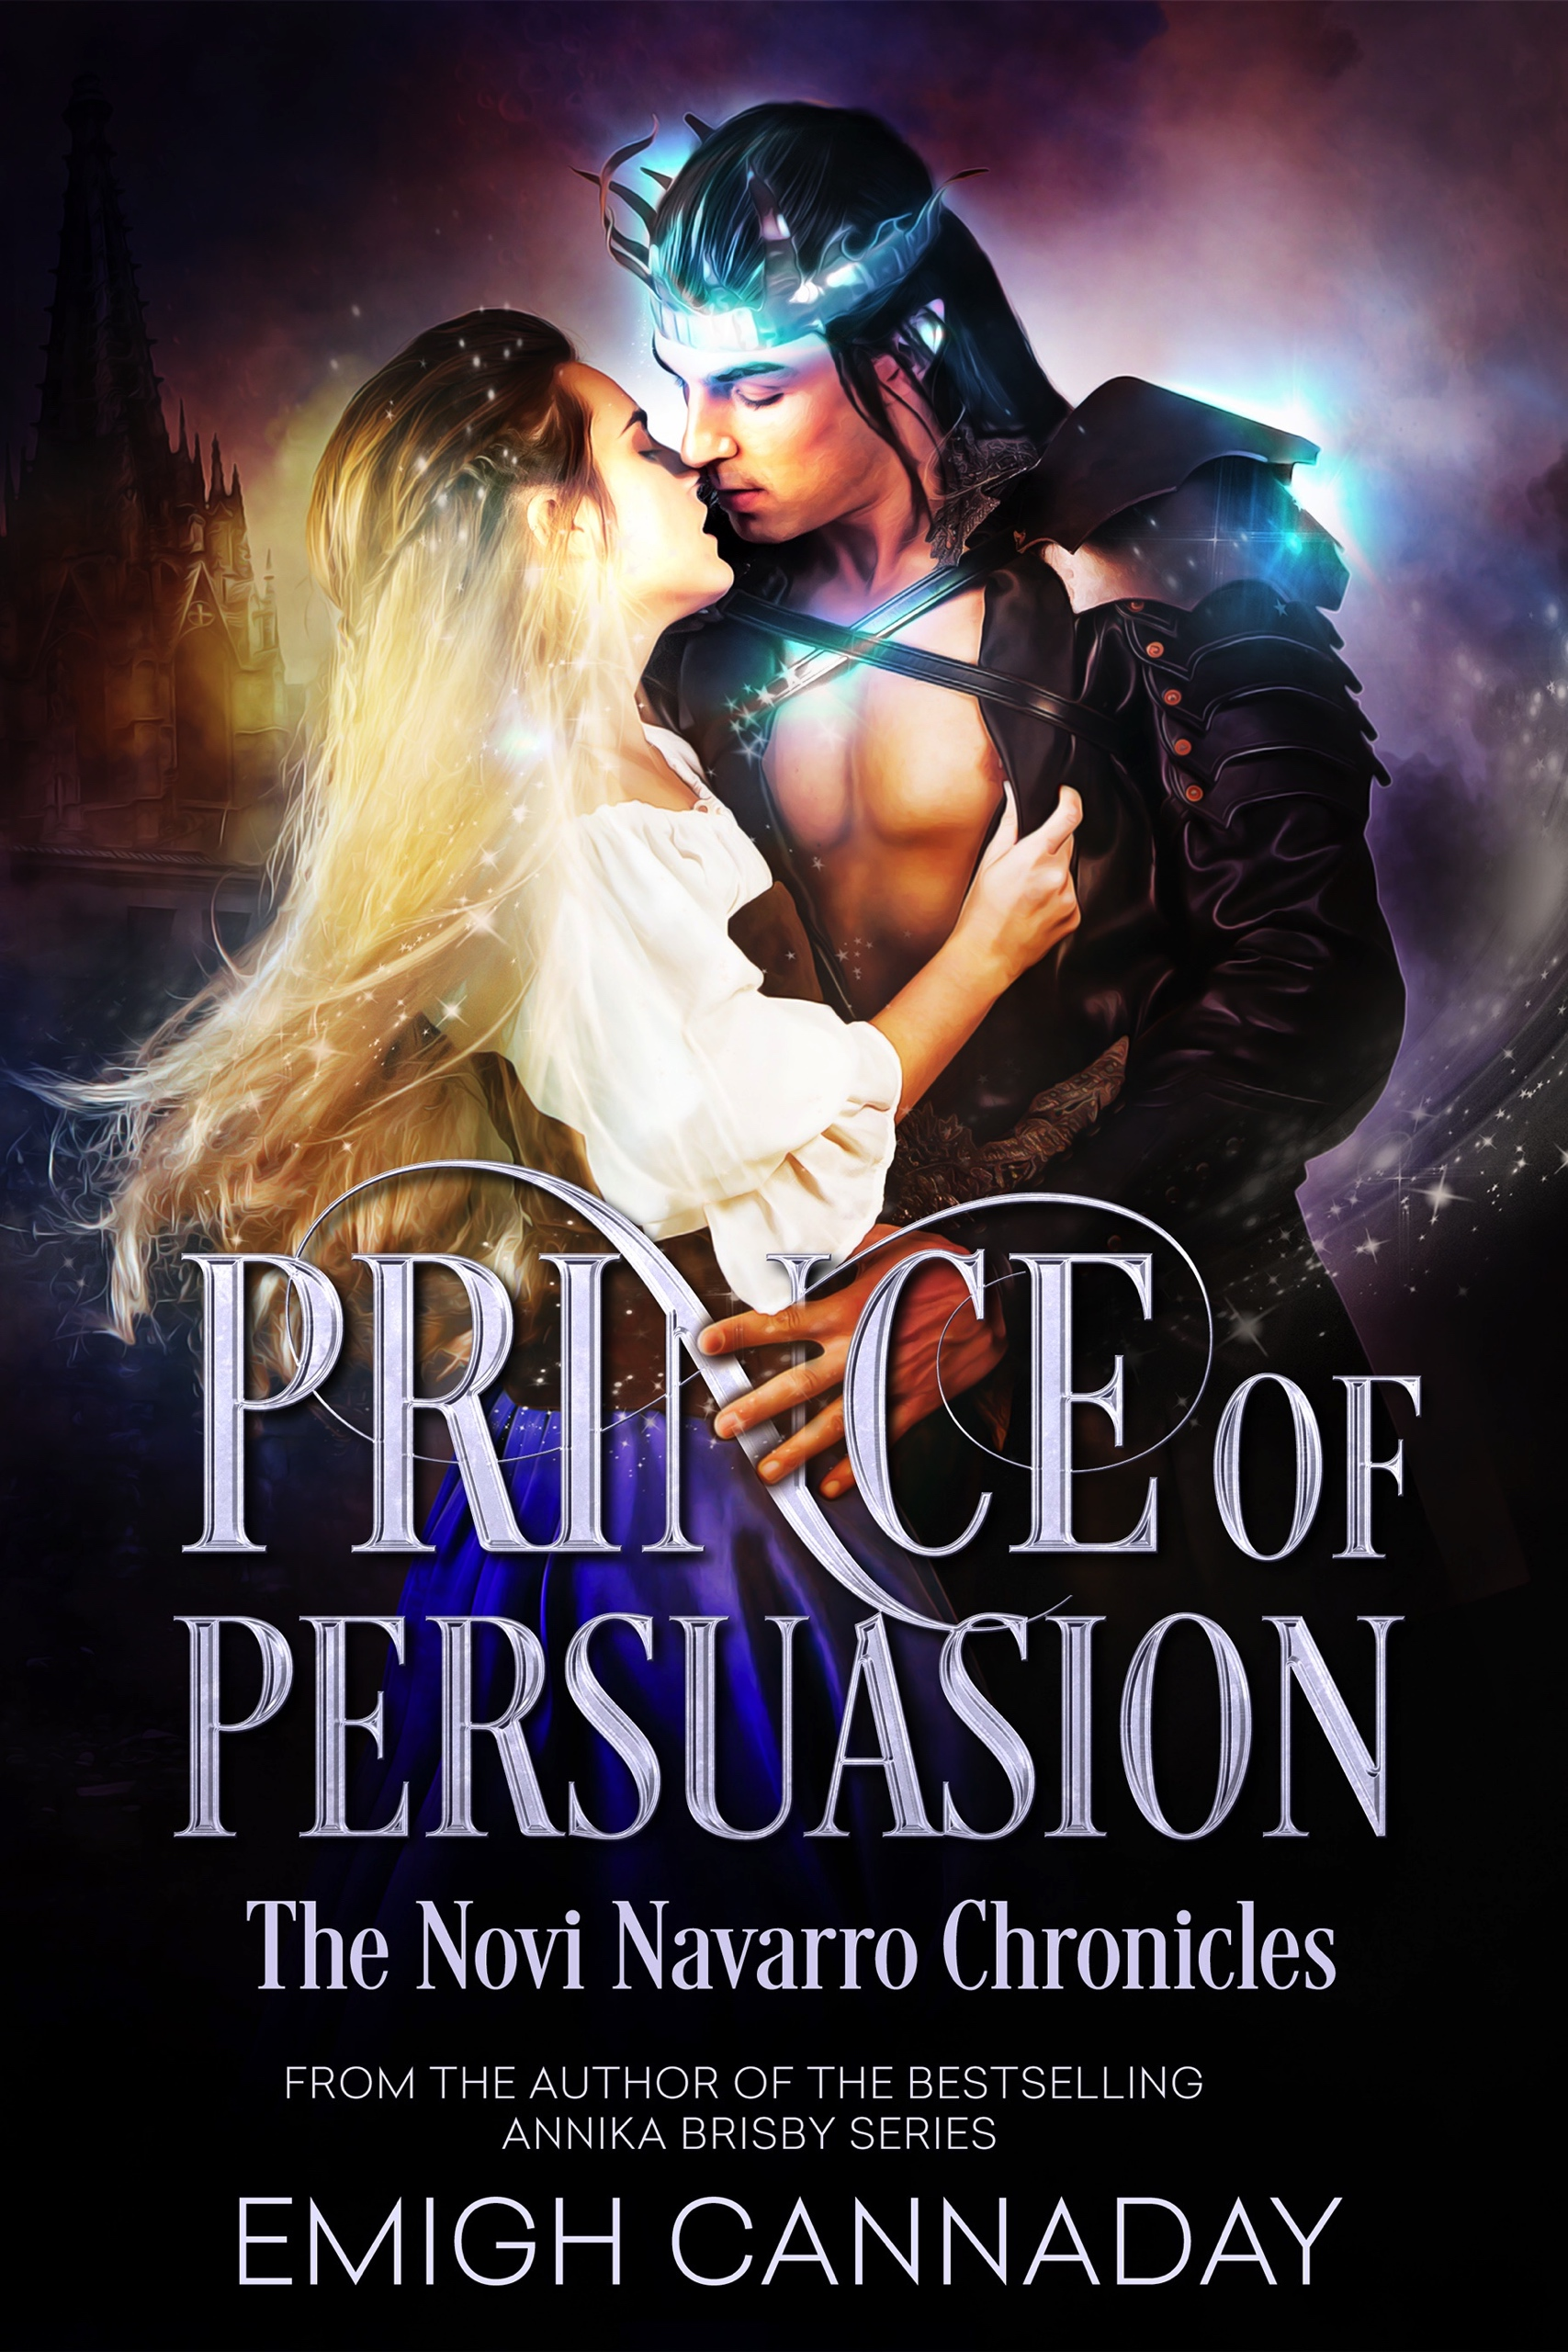 Prince-of-Persuasion-Kindle.jpg